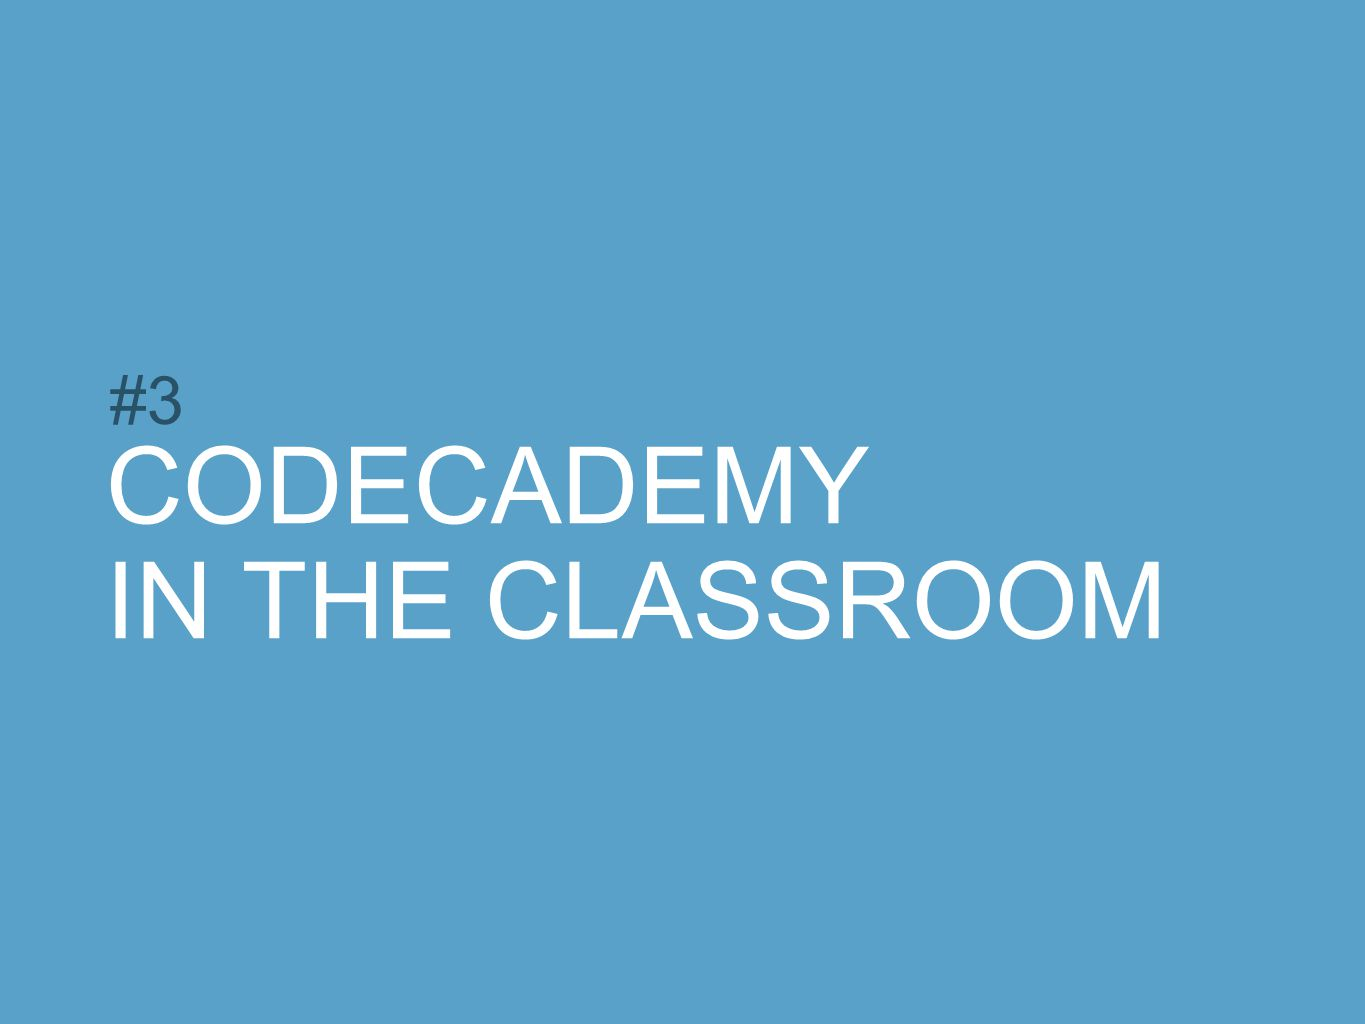 CODECADEMY IN THE CLASSROOM